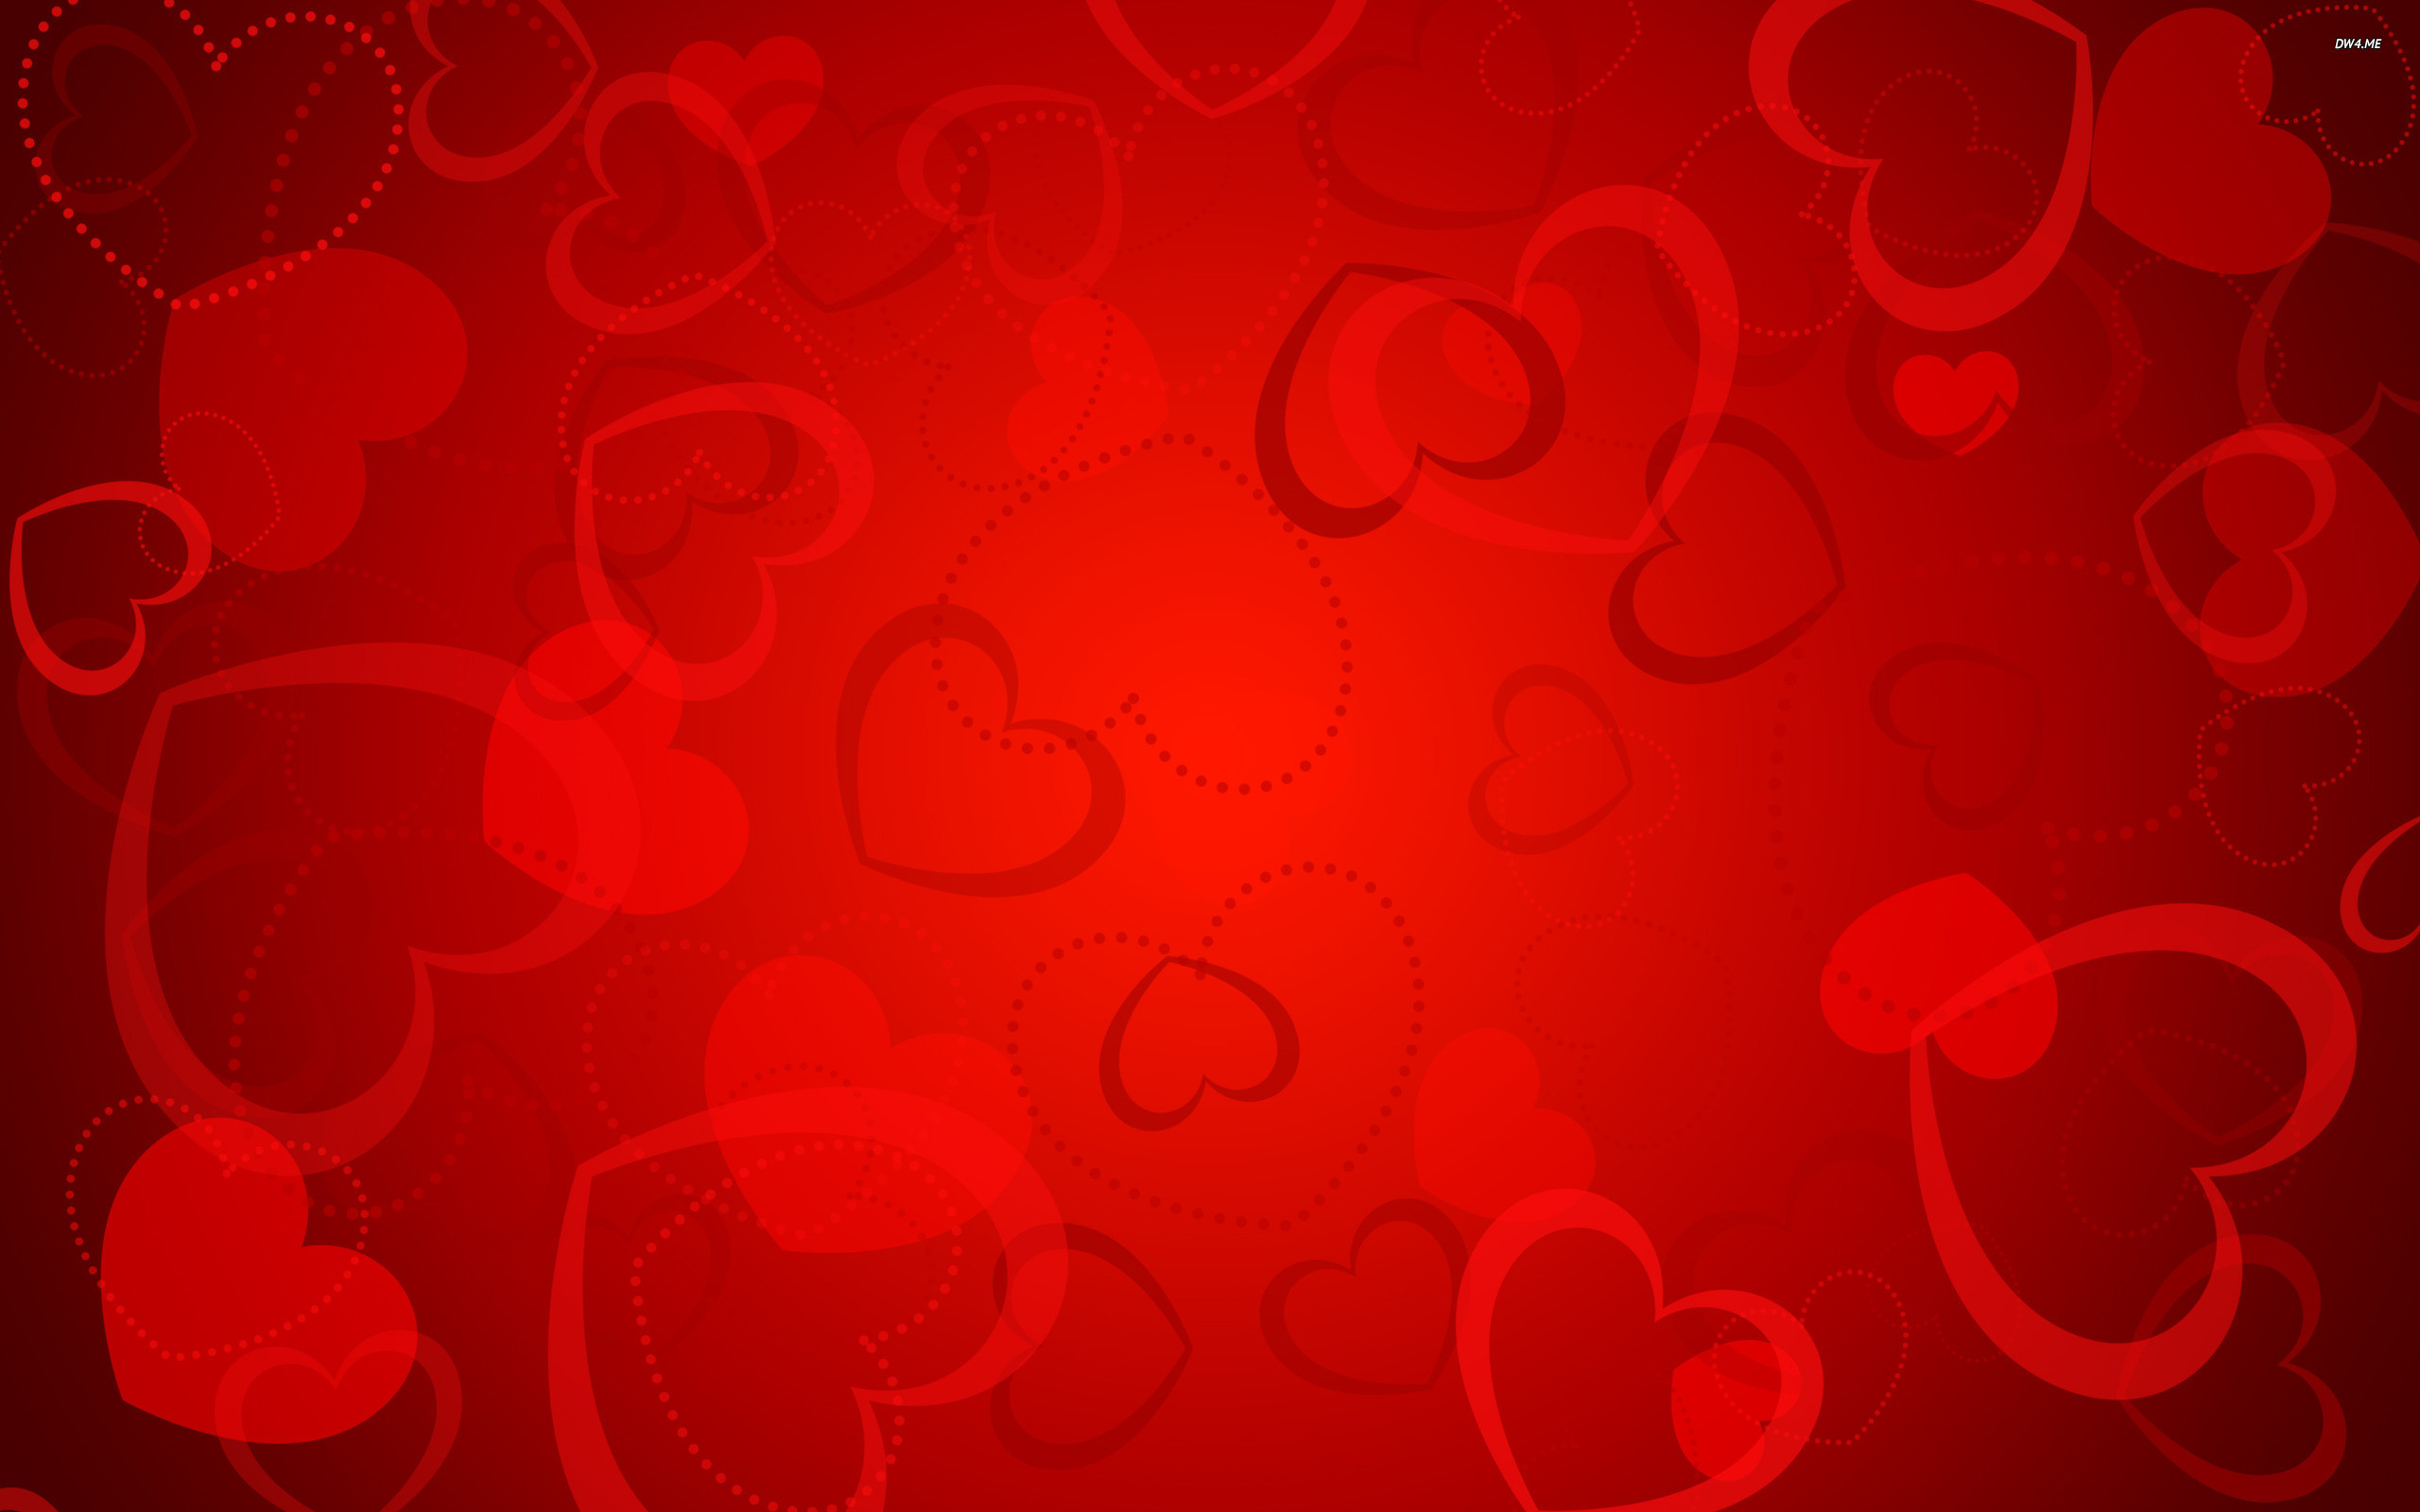 Red Hearts Wallpaper Background Red hearts wal…